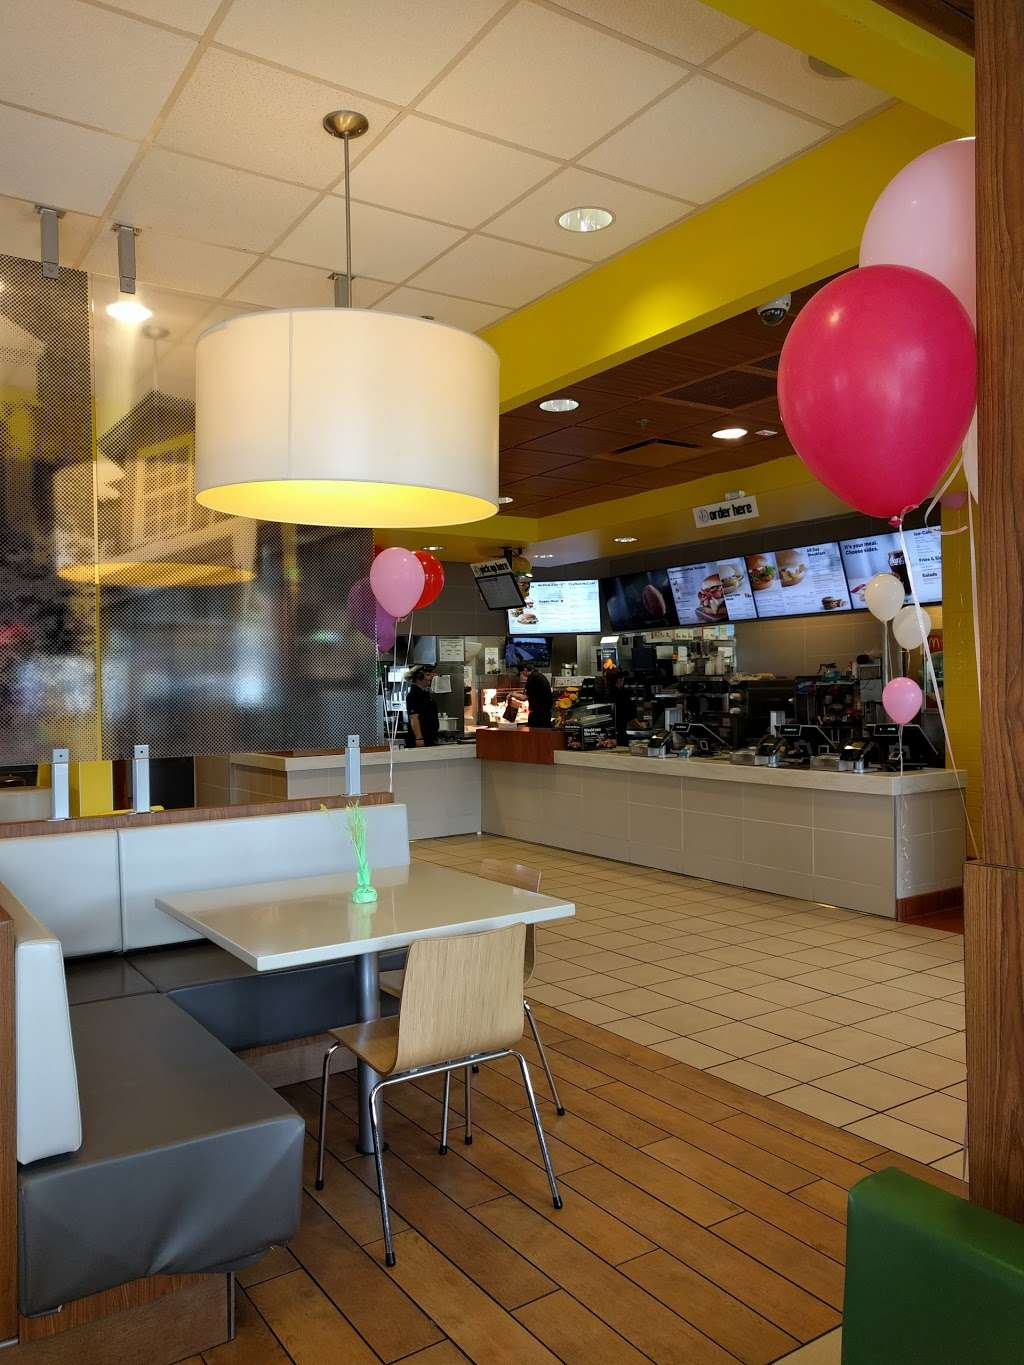 McDonalds - cafe  | Photo 7 of 10 | Address: 1 Red Pump Rd, Bel Air, MD 21014, USA | Phone: (410) 838-5129